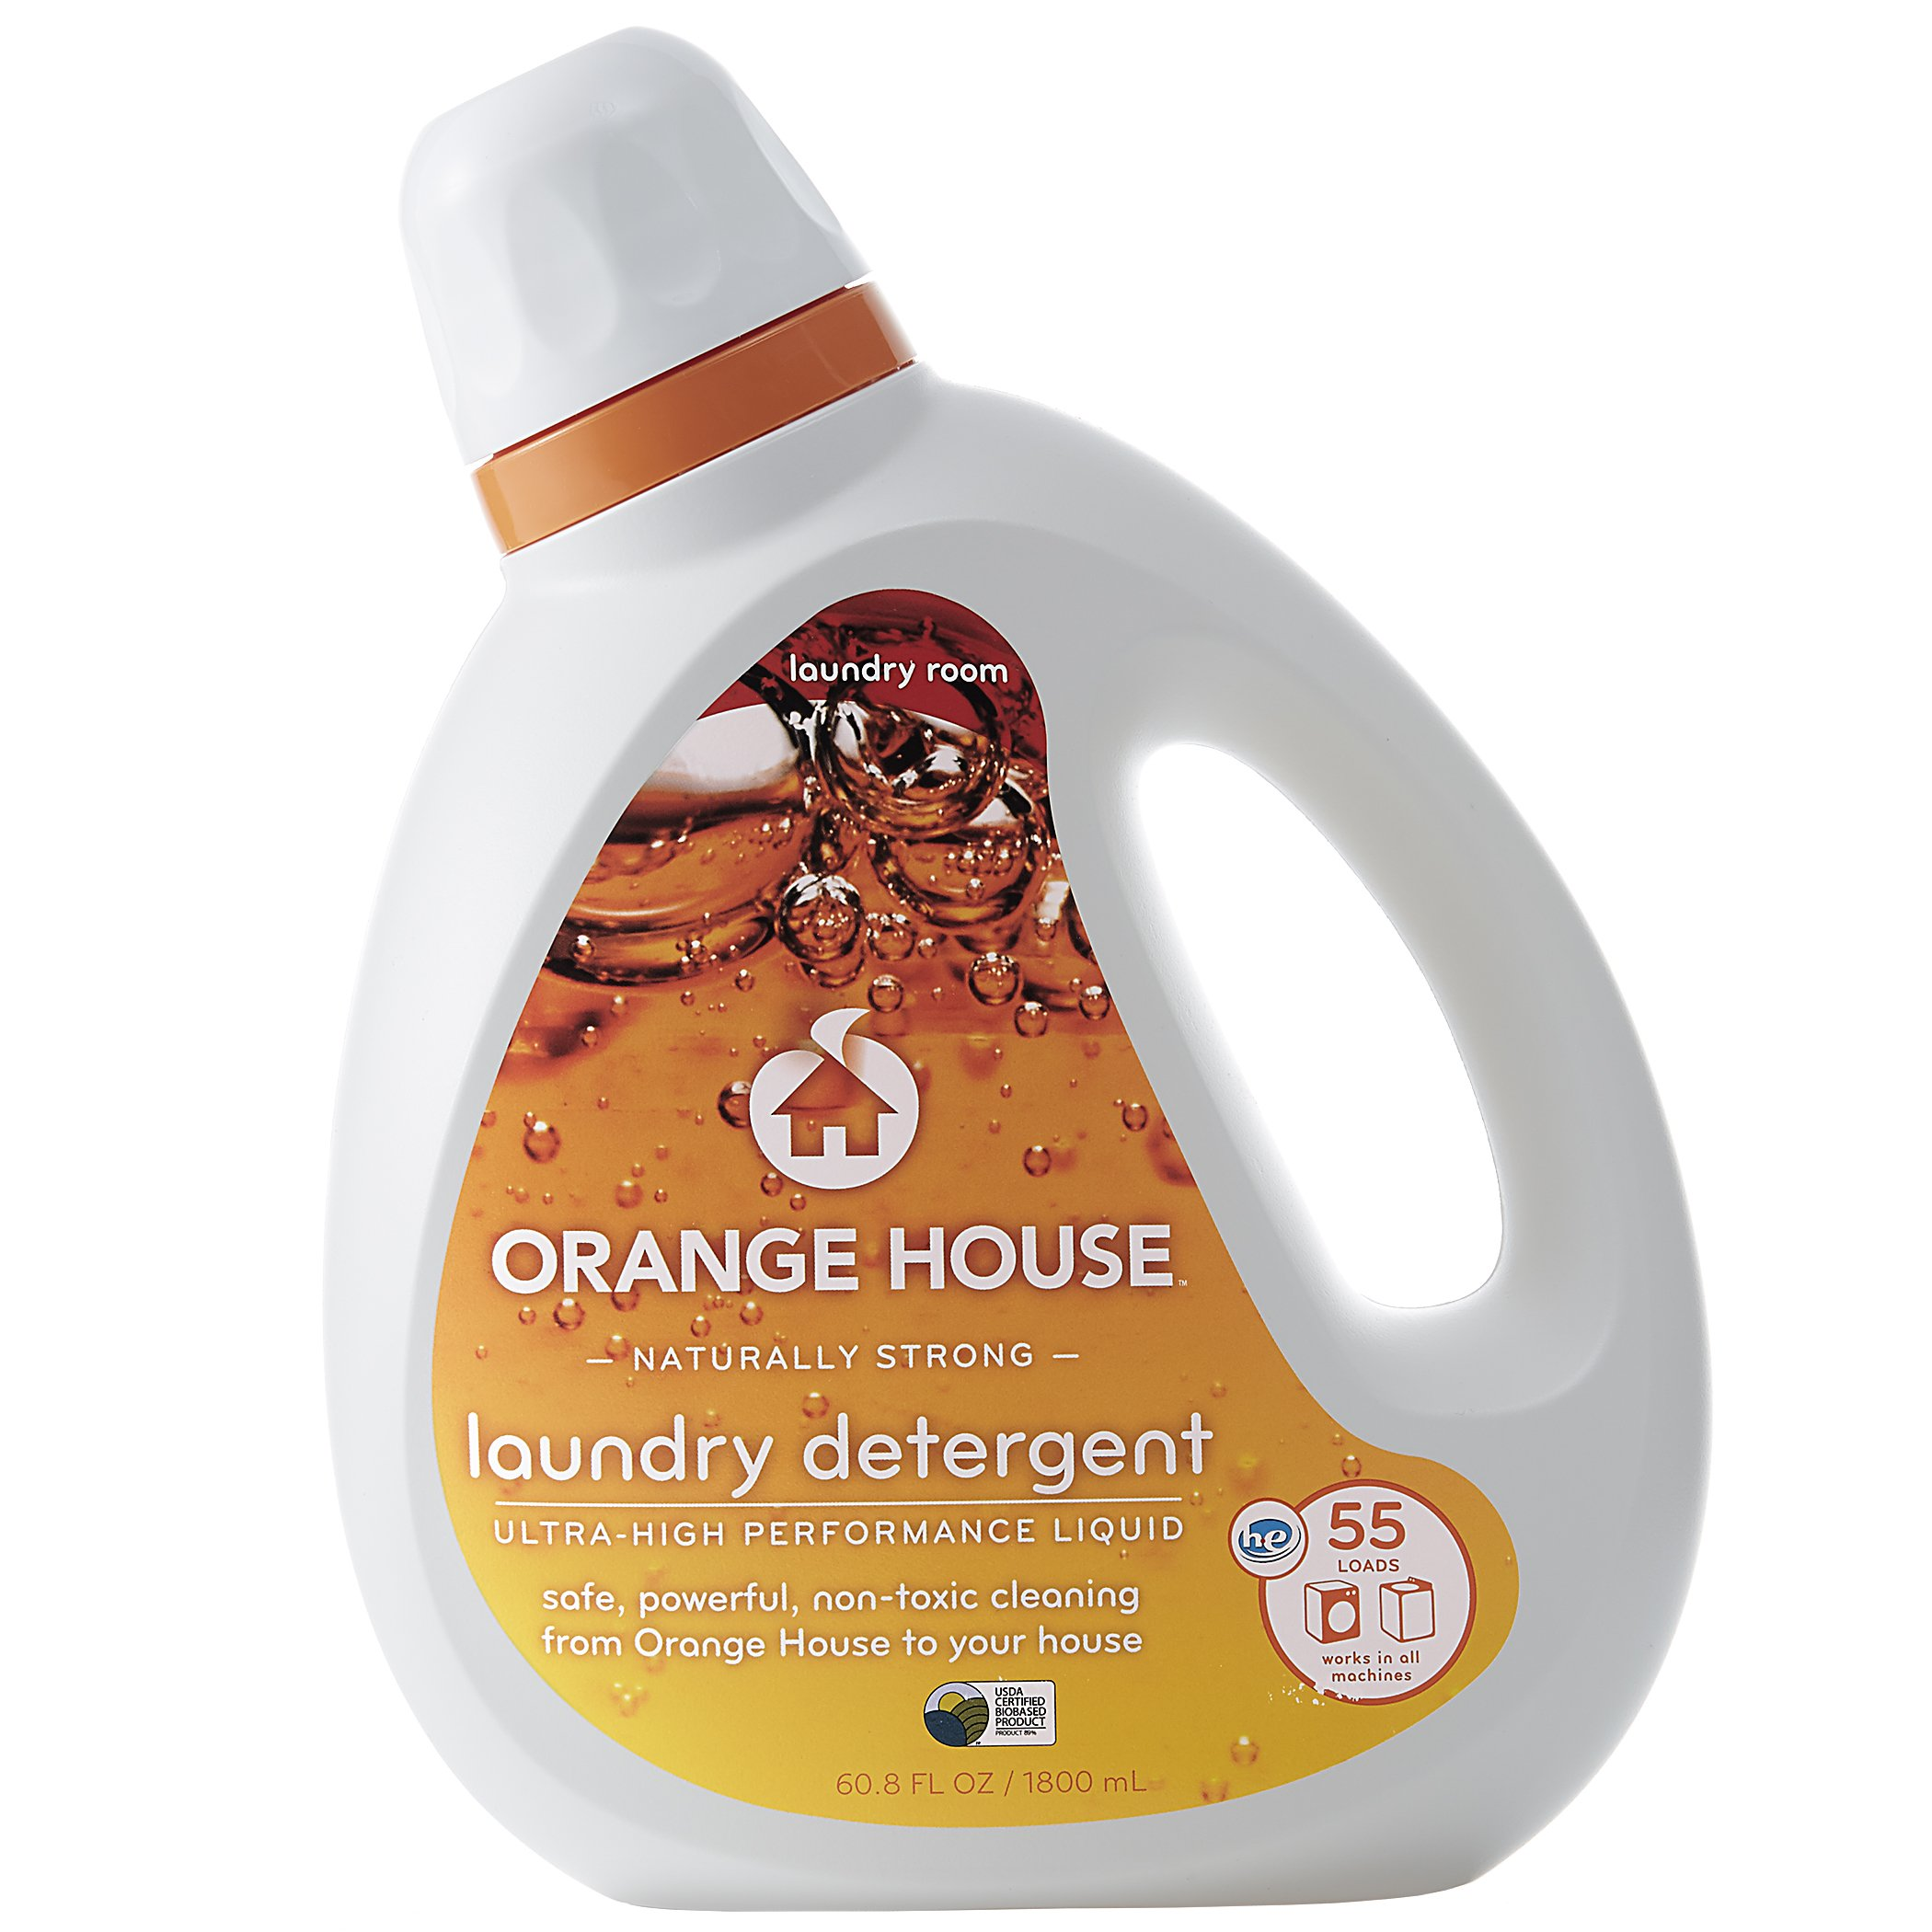 Orange House Liquid Laundry Detergent, Non-Toxic and Naturally Powerful, 55 Loads